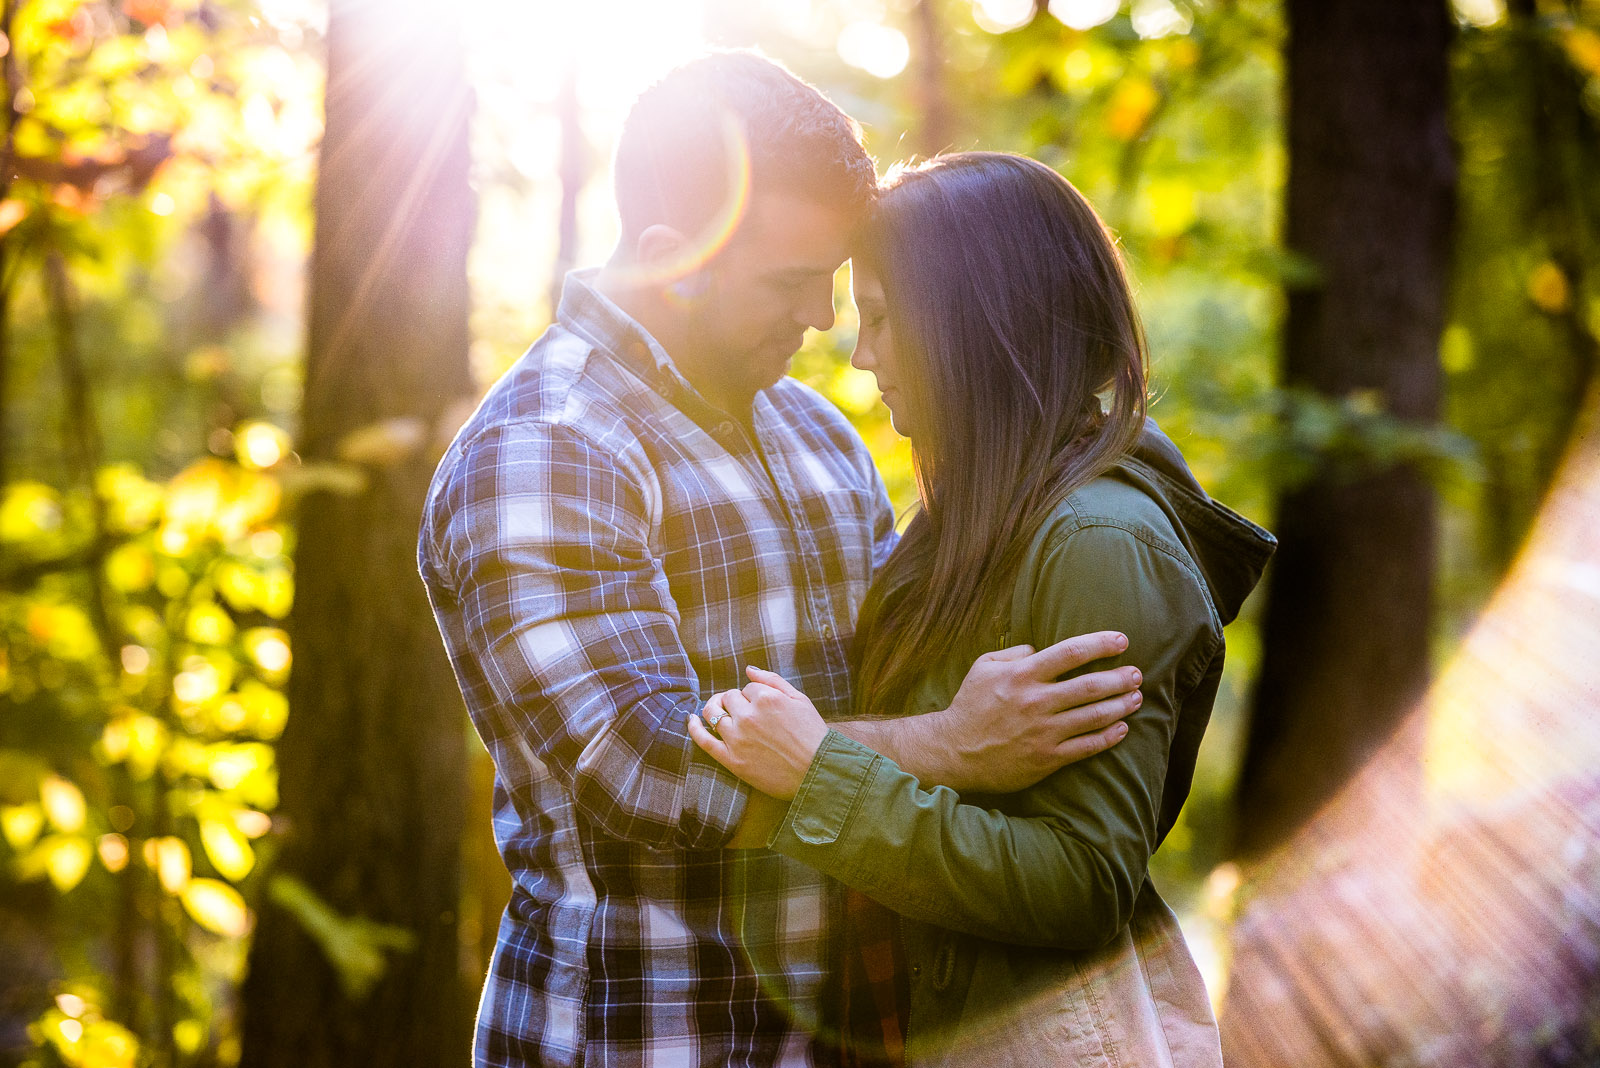 Eric_and_Christy_Photography_Blog_2017_Best_Engagement-8